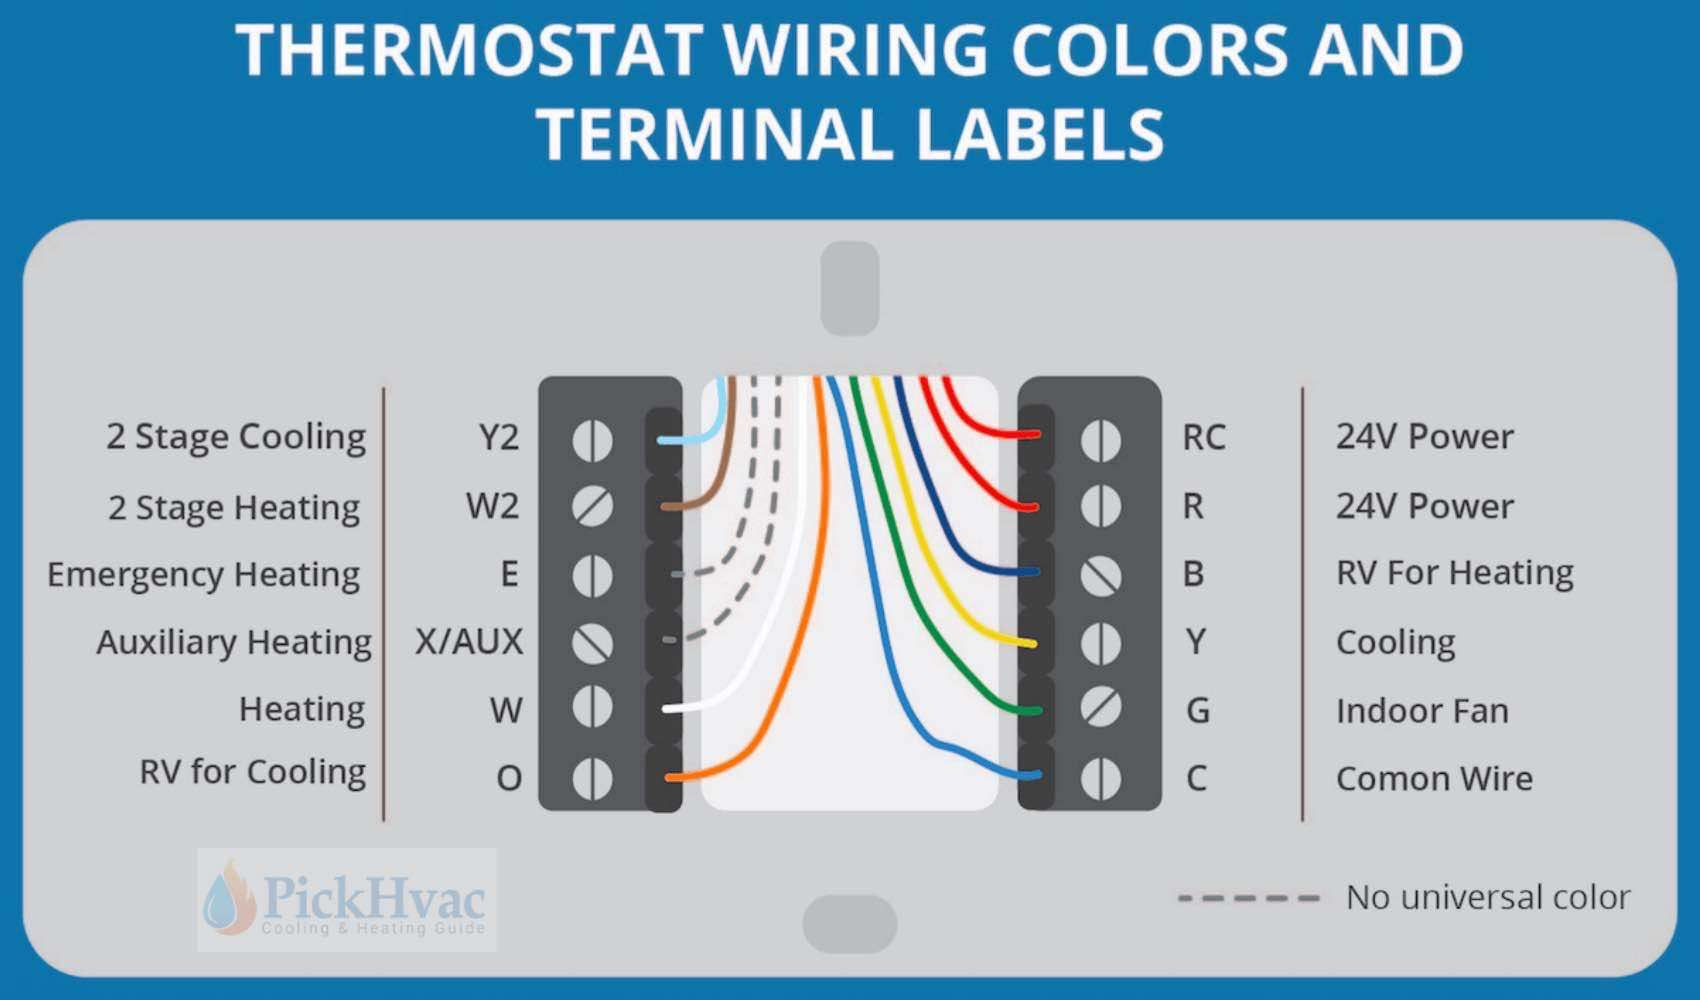 Thermostat Wiring Colors To Labels Thermostat Wiring Hvac Thermostat Heating Thermostat